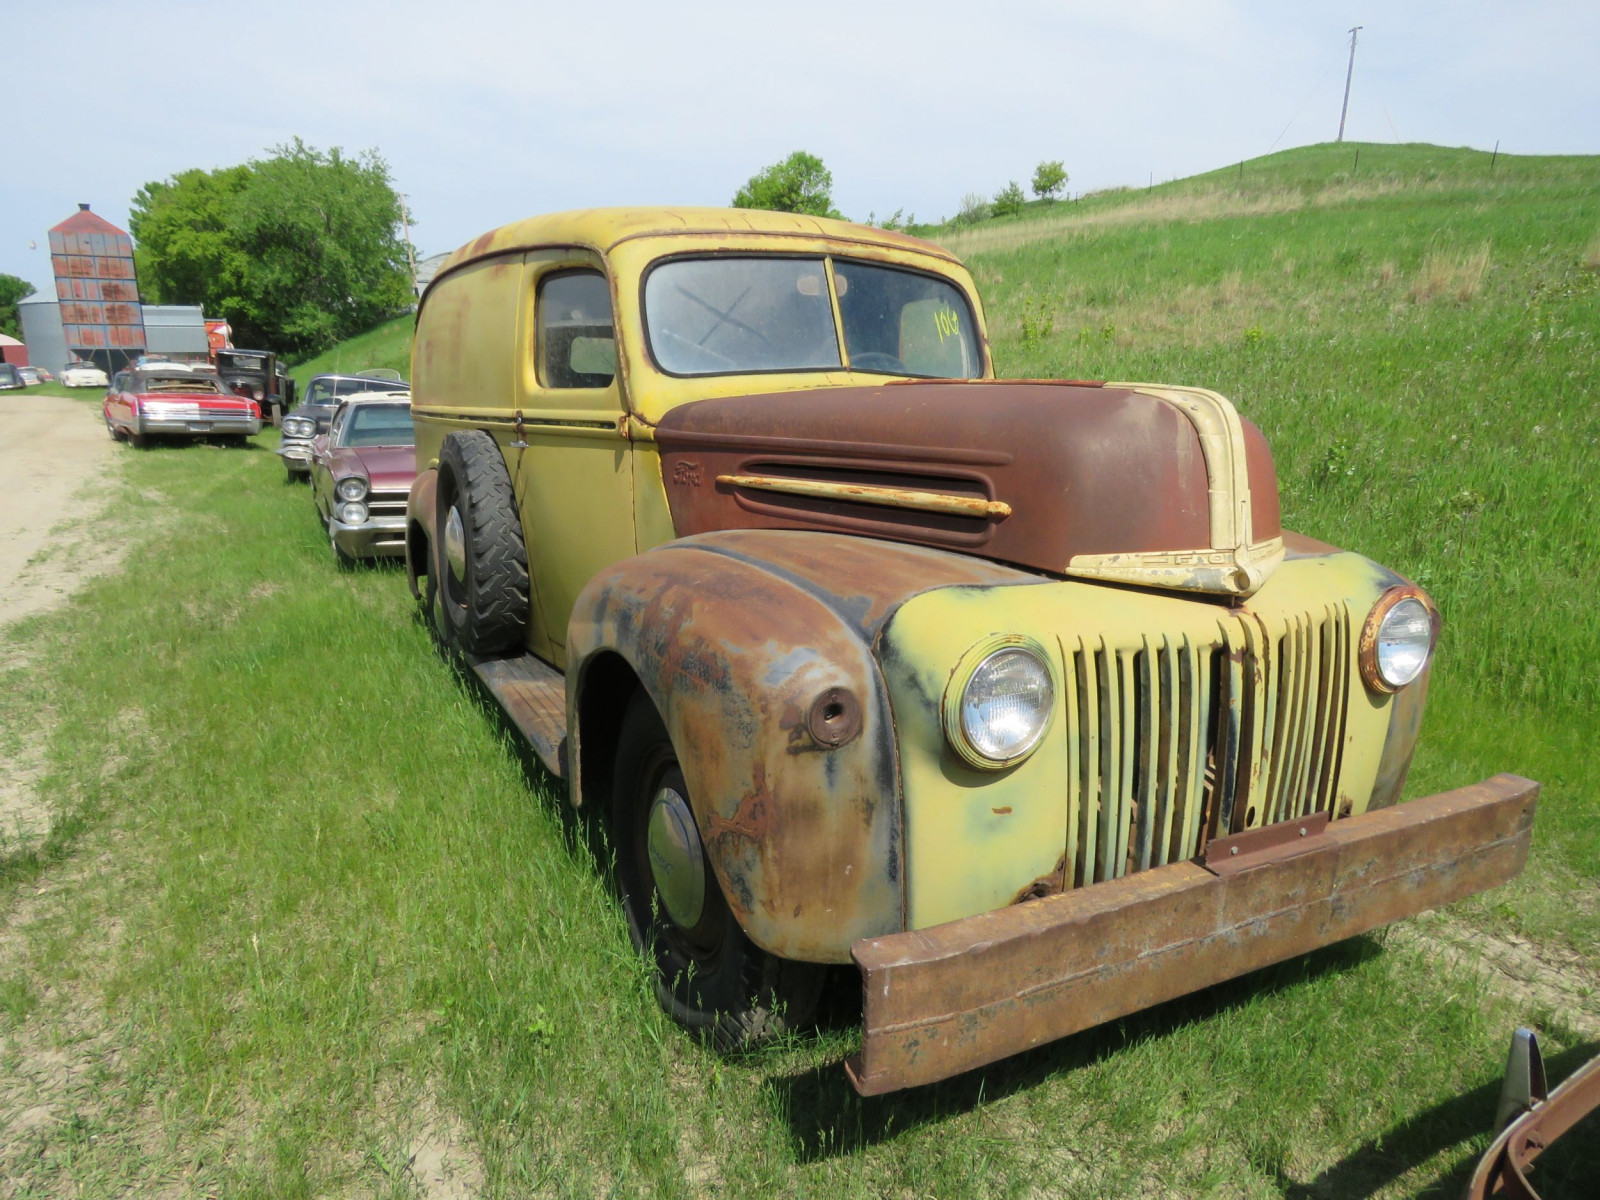 1941 Ford Panel Truck - Image 2